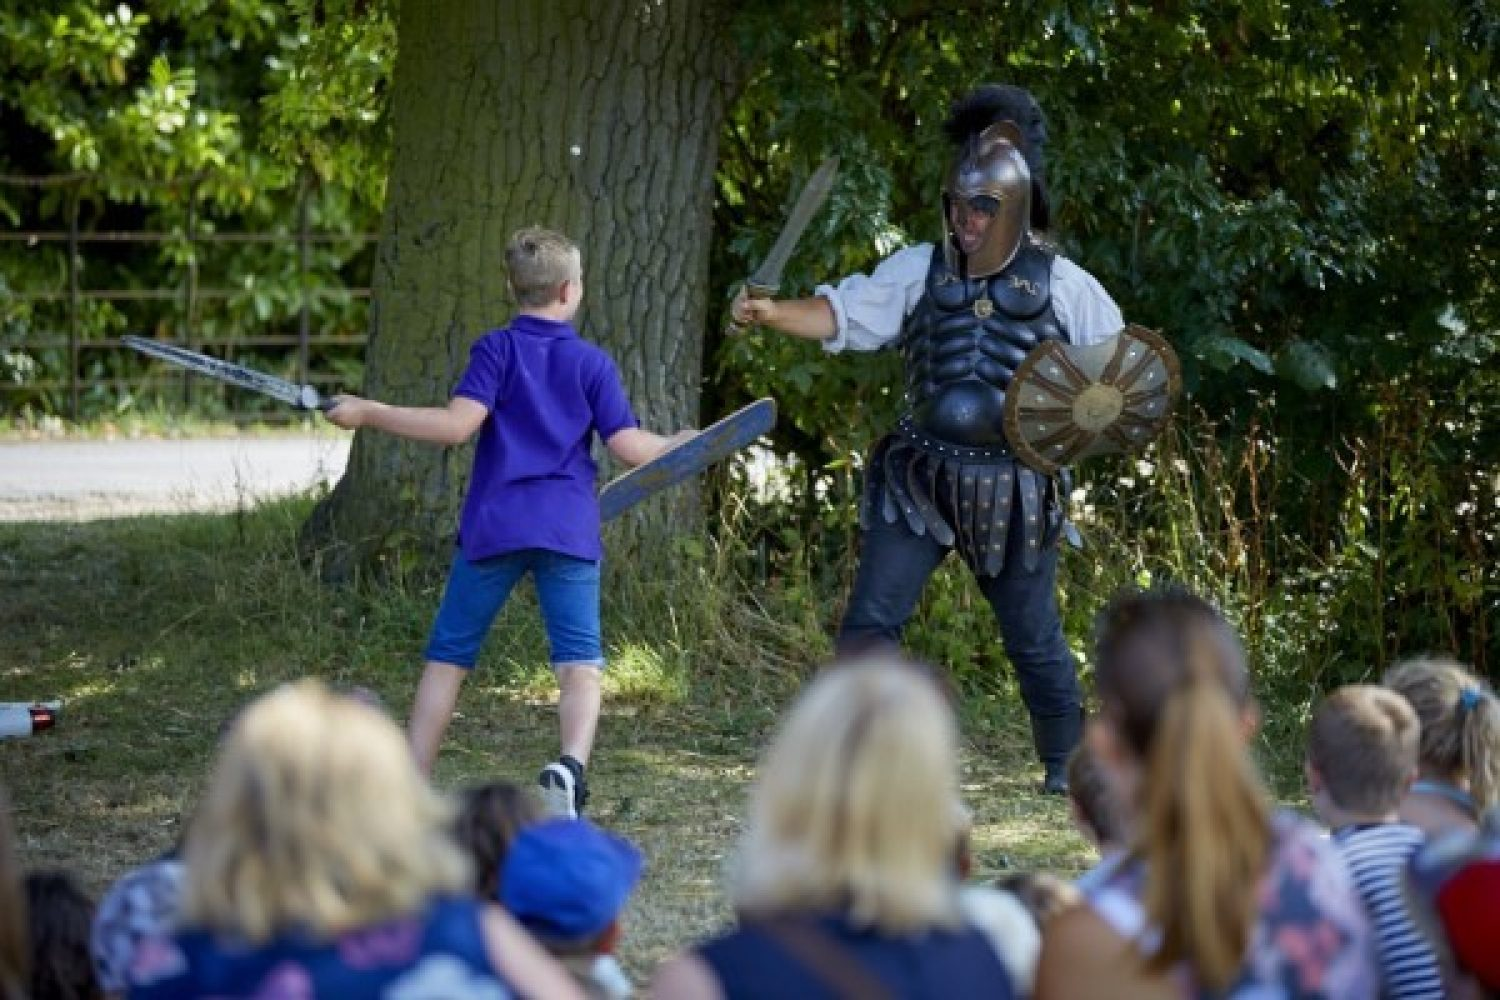 A young boy engages in a mock fight with an entertainer clad in Roman armour